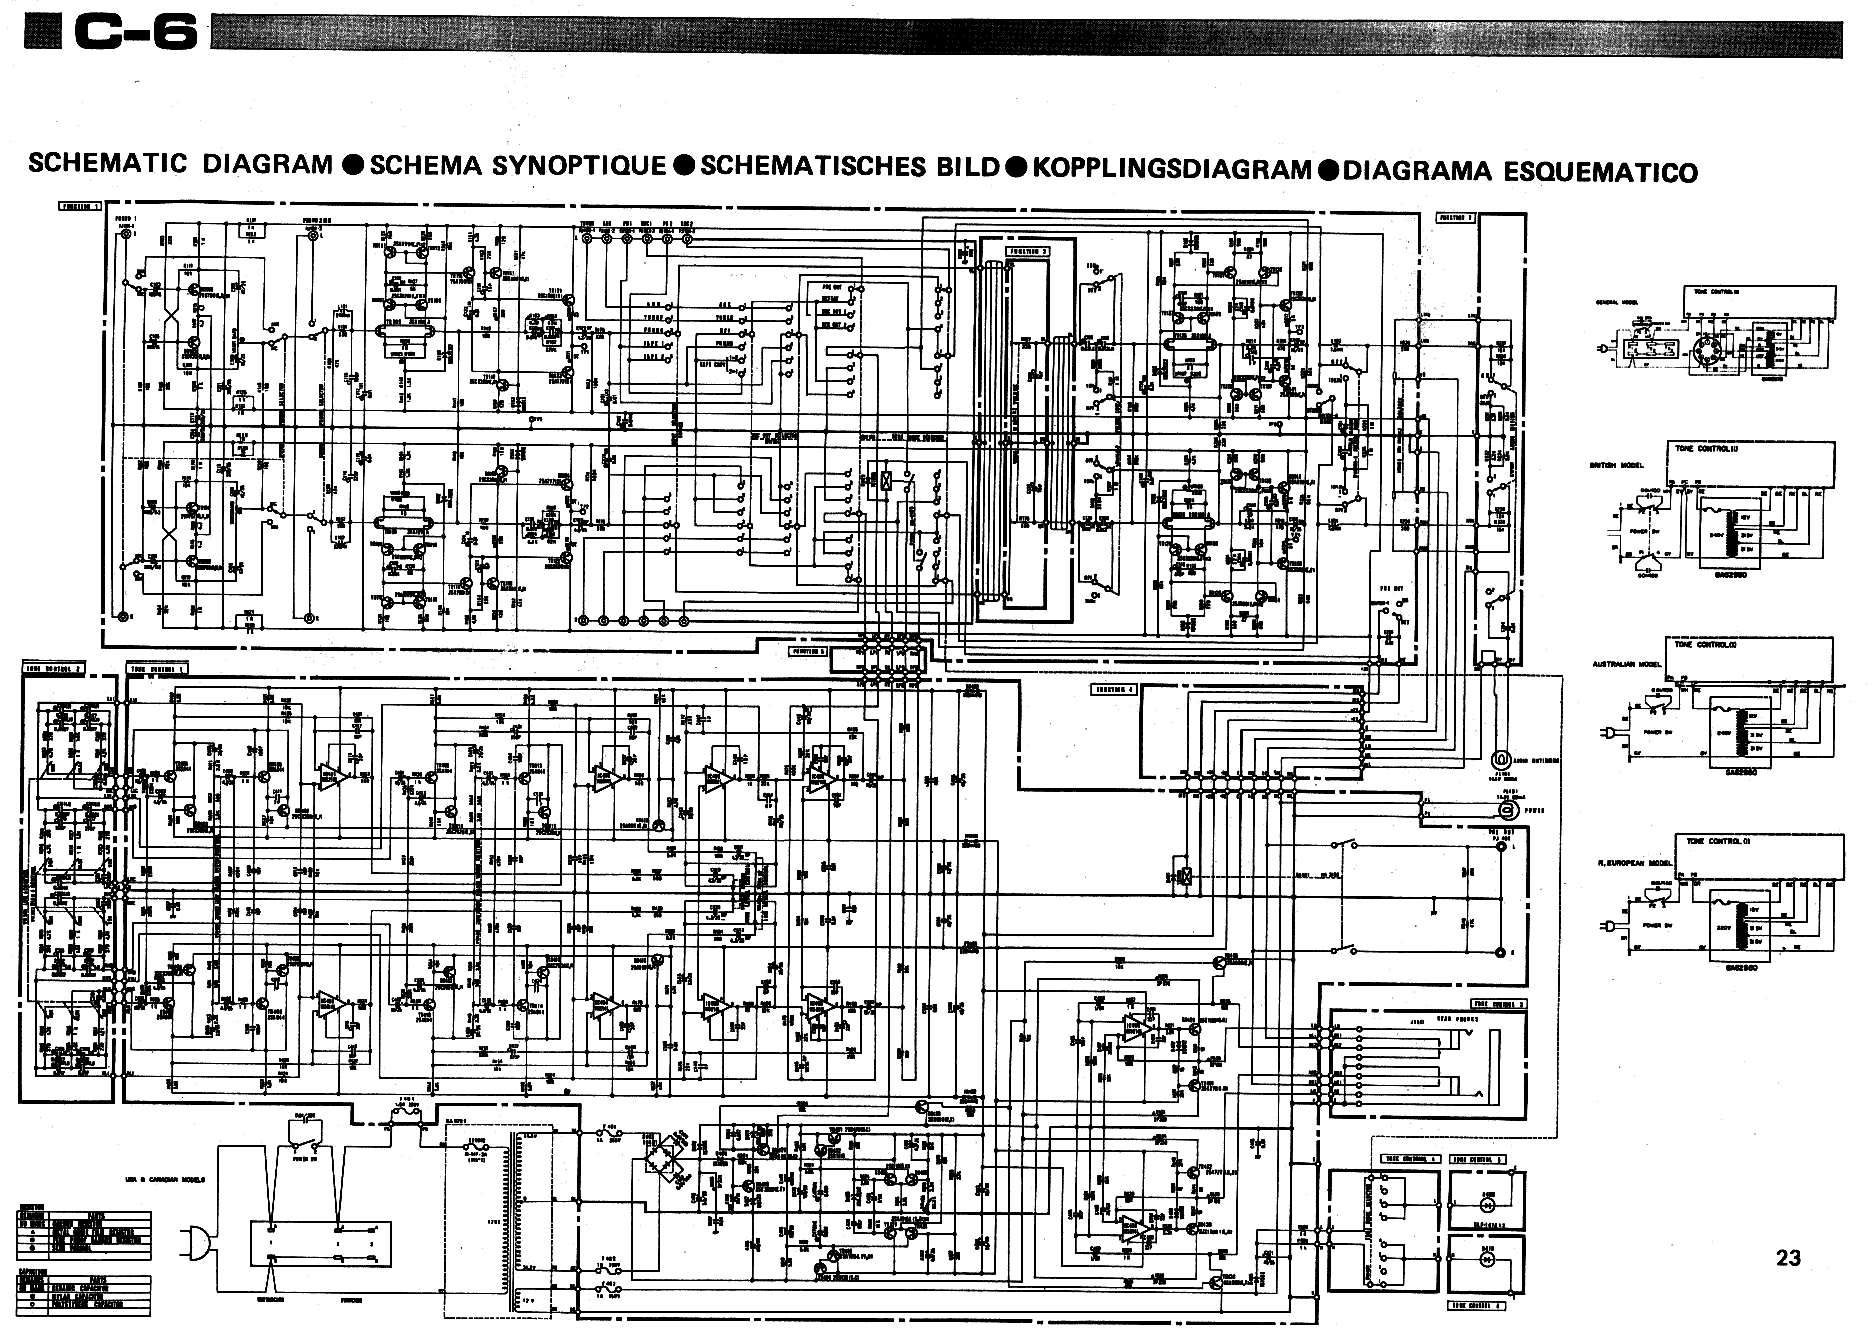 Yamaha Pre Amplifier Circuit Manual Guide Wiring Diagram Amplifiercircuitpowersupply Power Stereo Audio C 6 Preamplifier Service Download Schematics Eeprom Rh Elektrotanya Com Transistor Bass